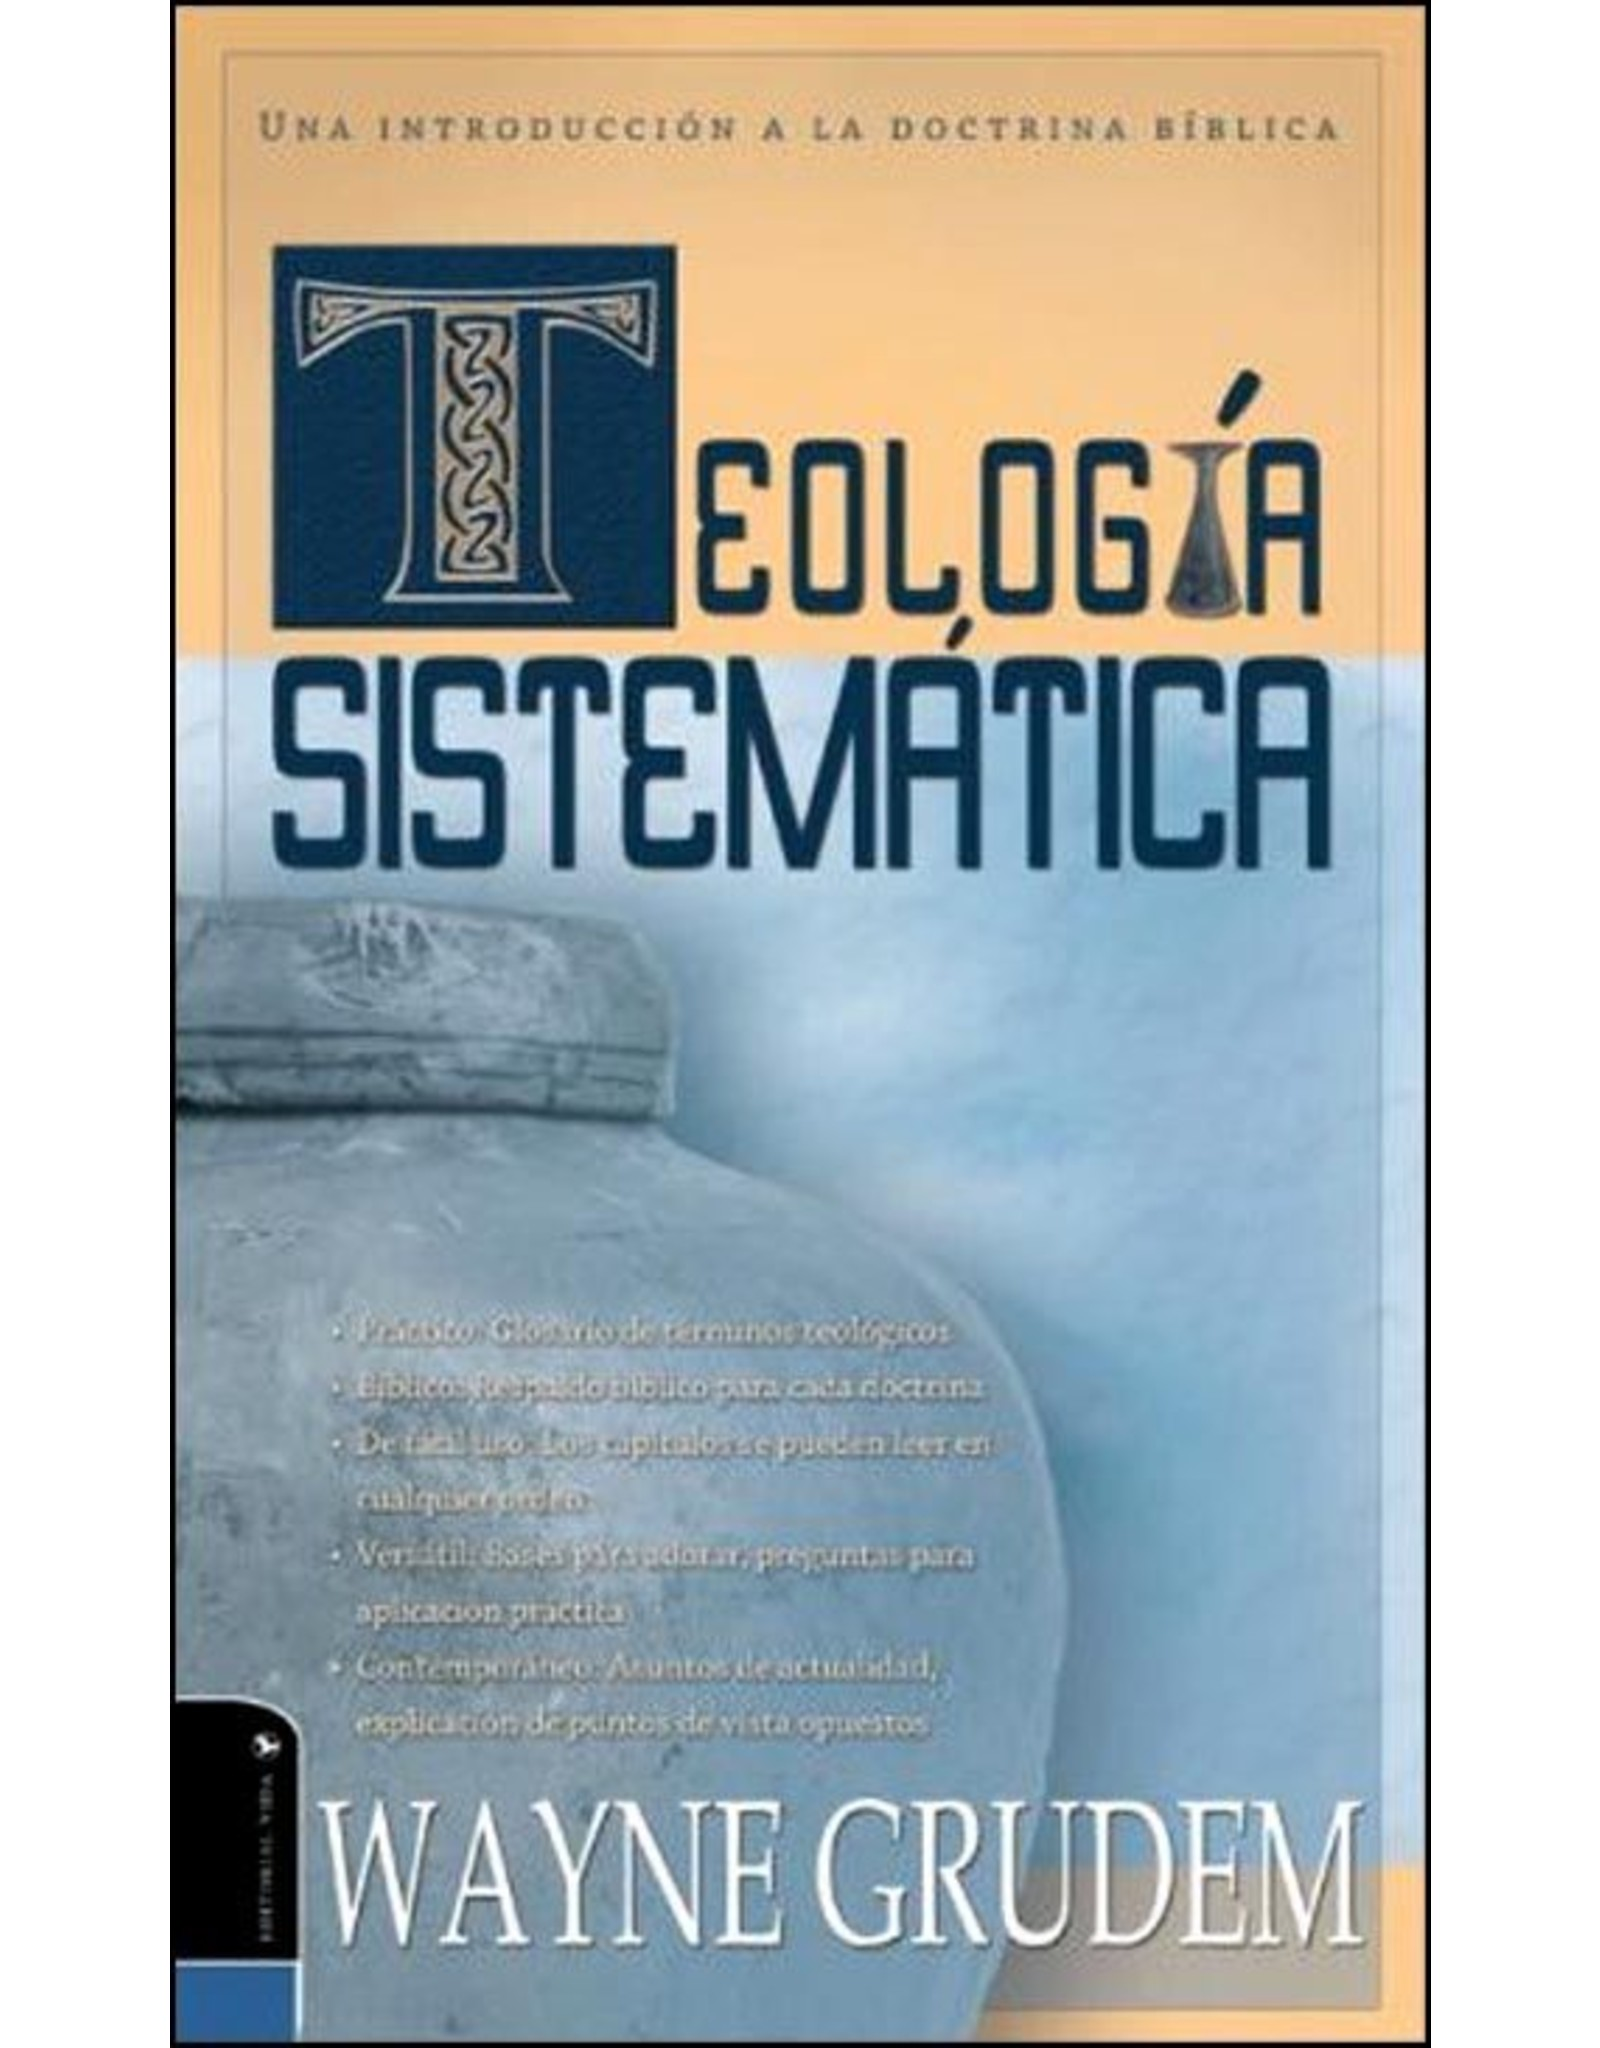 Harper Collins / Thomas Nelson / Zondervan Teologia Sistematica (Systematic Theology - Spanish)